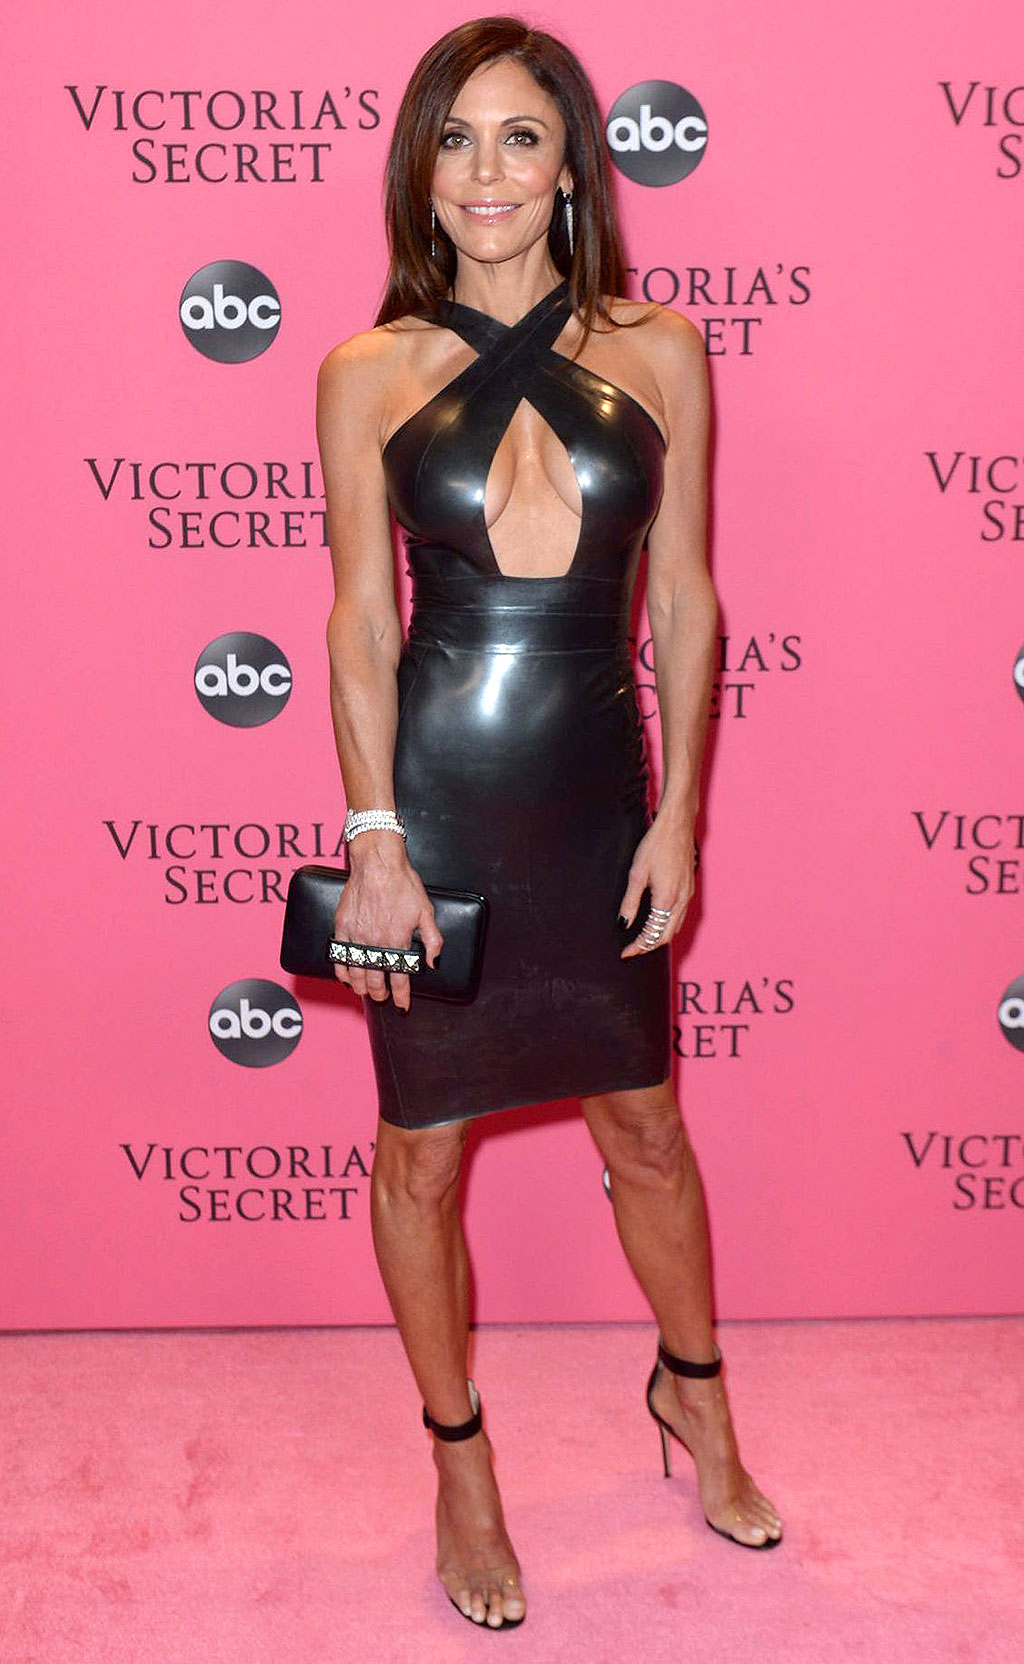 Victoria's Secret Fashion Show, Pink Carpet Arrivals, New York, USA - 08 Nov 2018